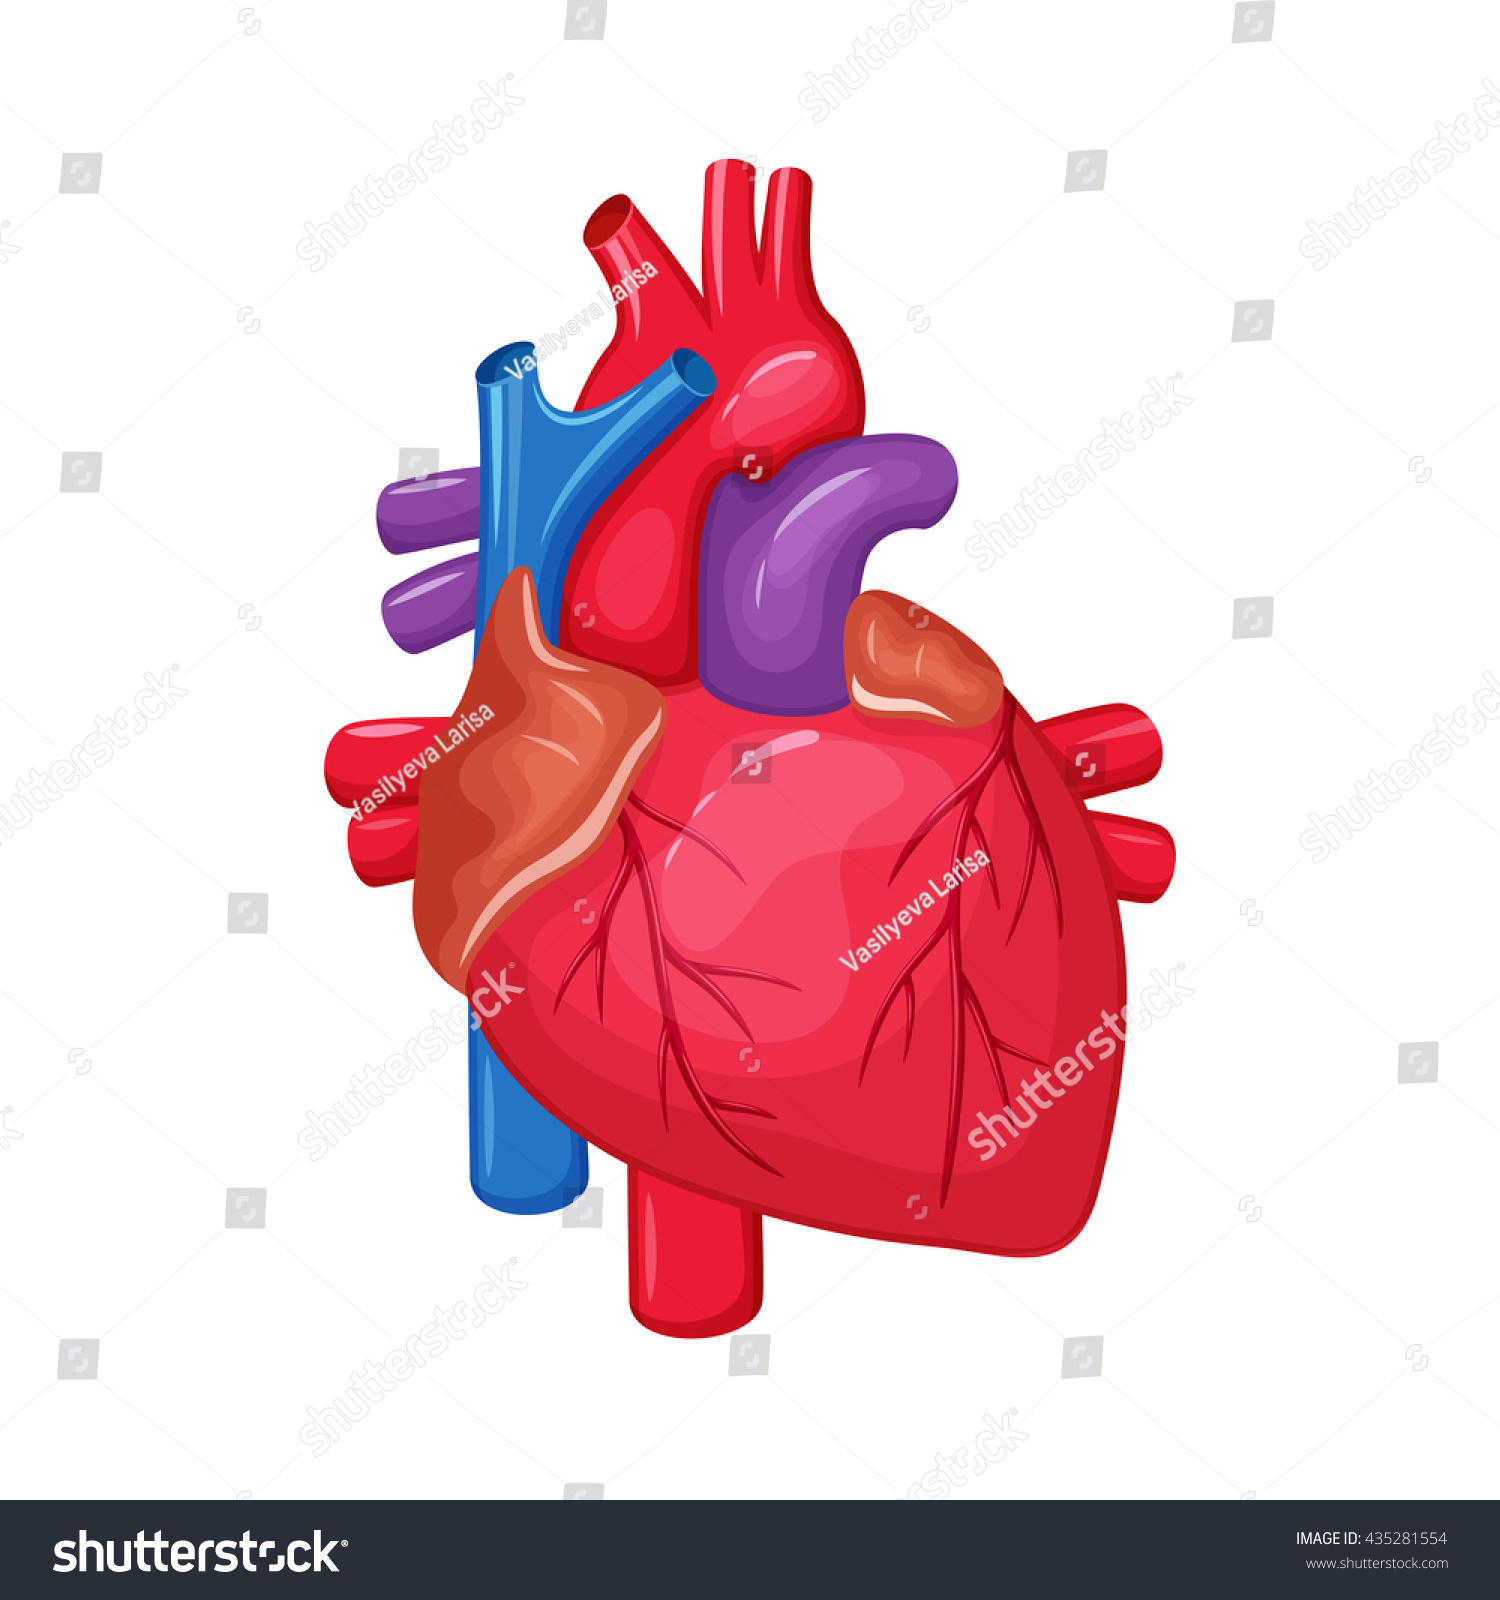 Human Heart Anatomy Medical Science Vector Stock Vector 435281554 ...